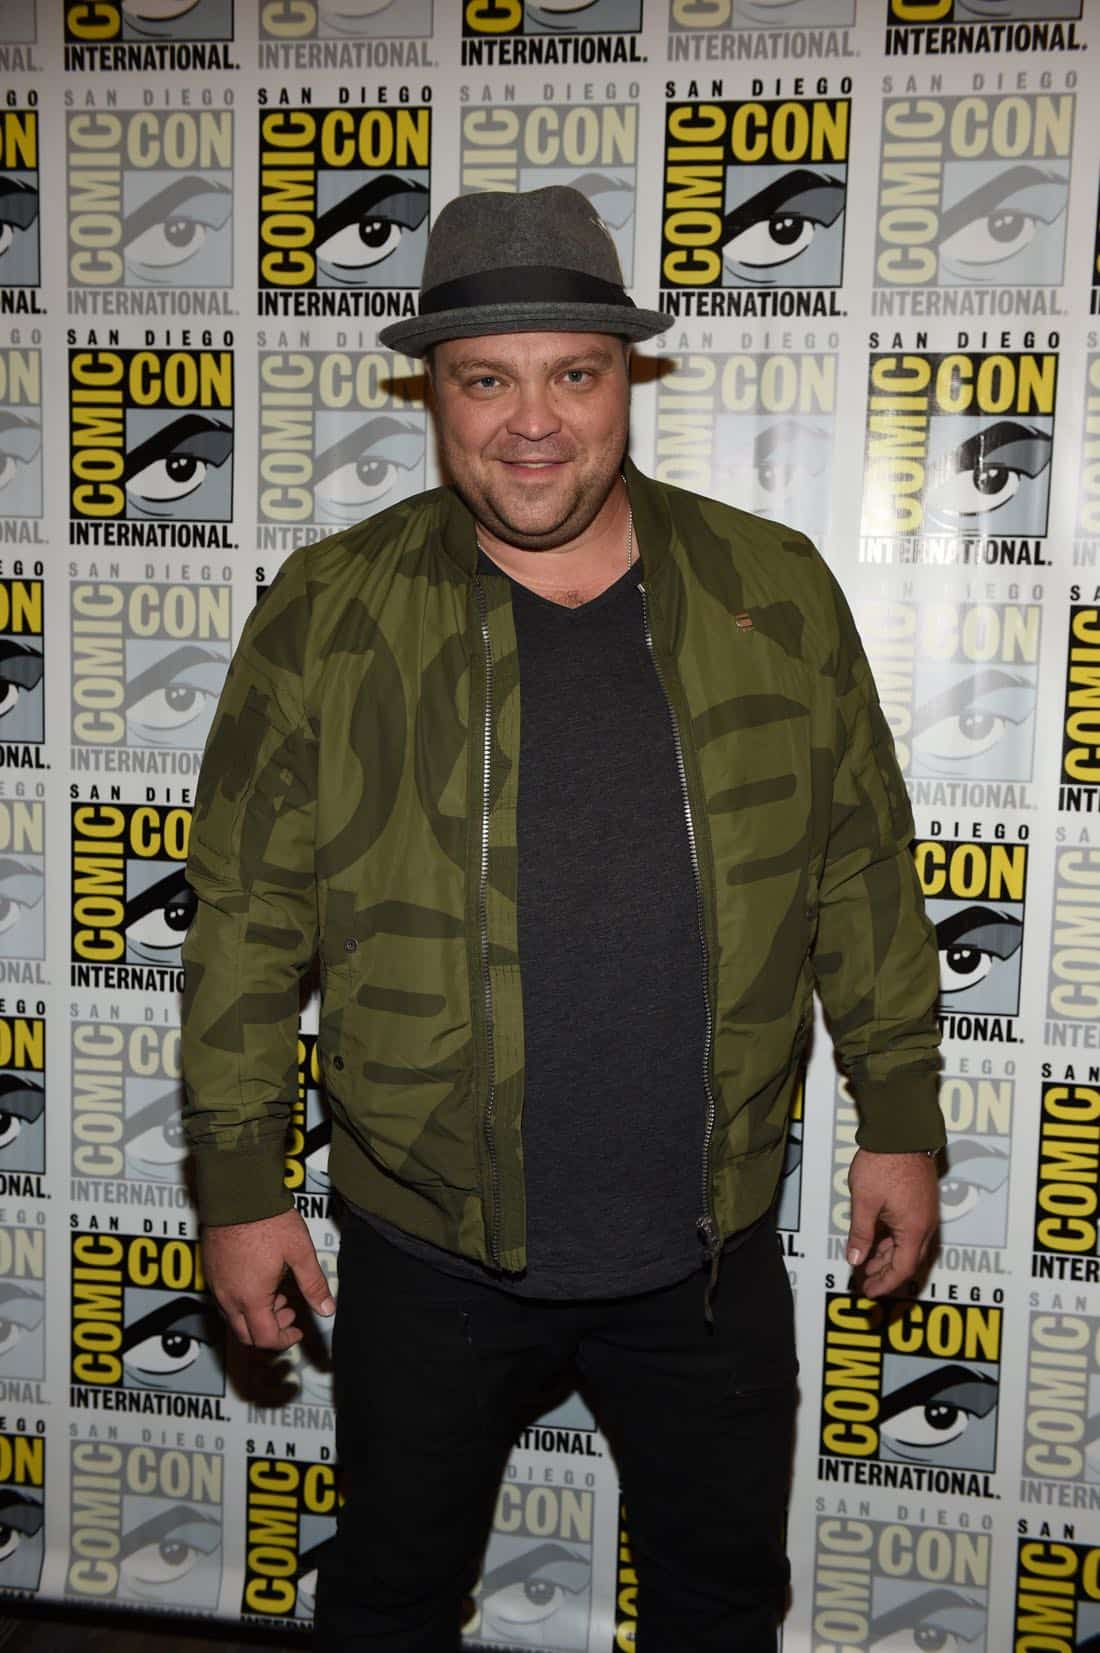 FOX FANFARE AT SAN DIEGO COMIC-CON © 2016: GOTHAM cast member Drew Powell during GOTHAM press room on Saturday, July 23 at the FOX FANFARE AT SAN DIEGO COMIC-CON © 2016. CR: Scott Kirkland/FOX © 2016 FOX BROADCASTING